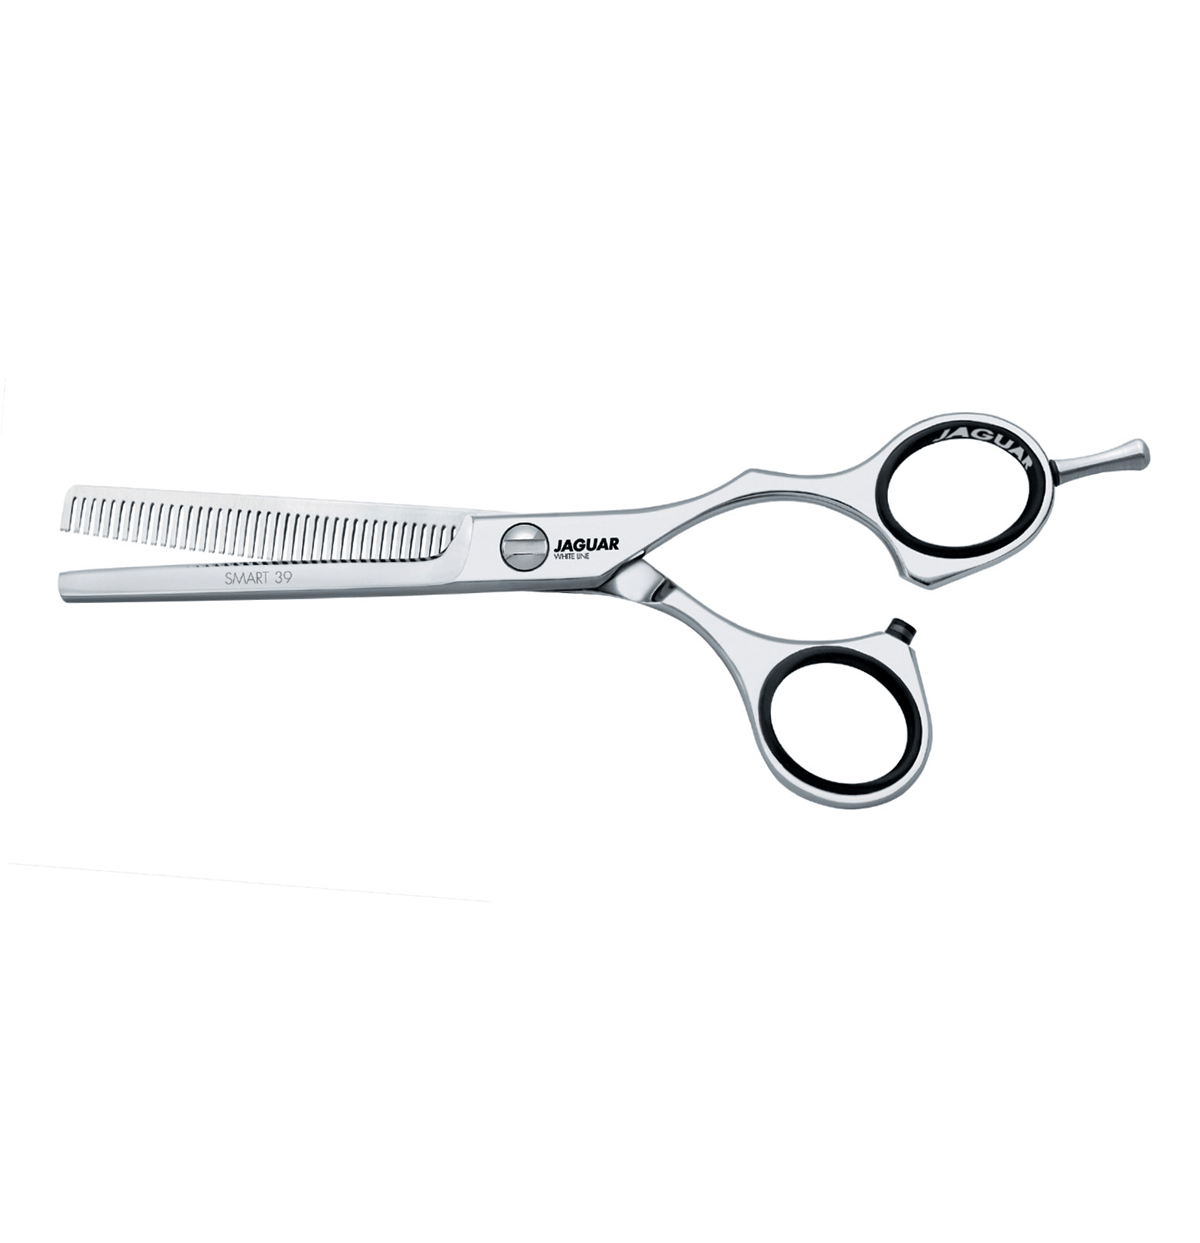 Smart Offset Thinning Shear - Bonika Shears